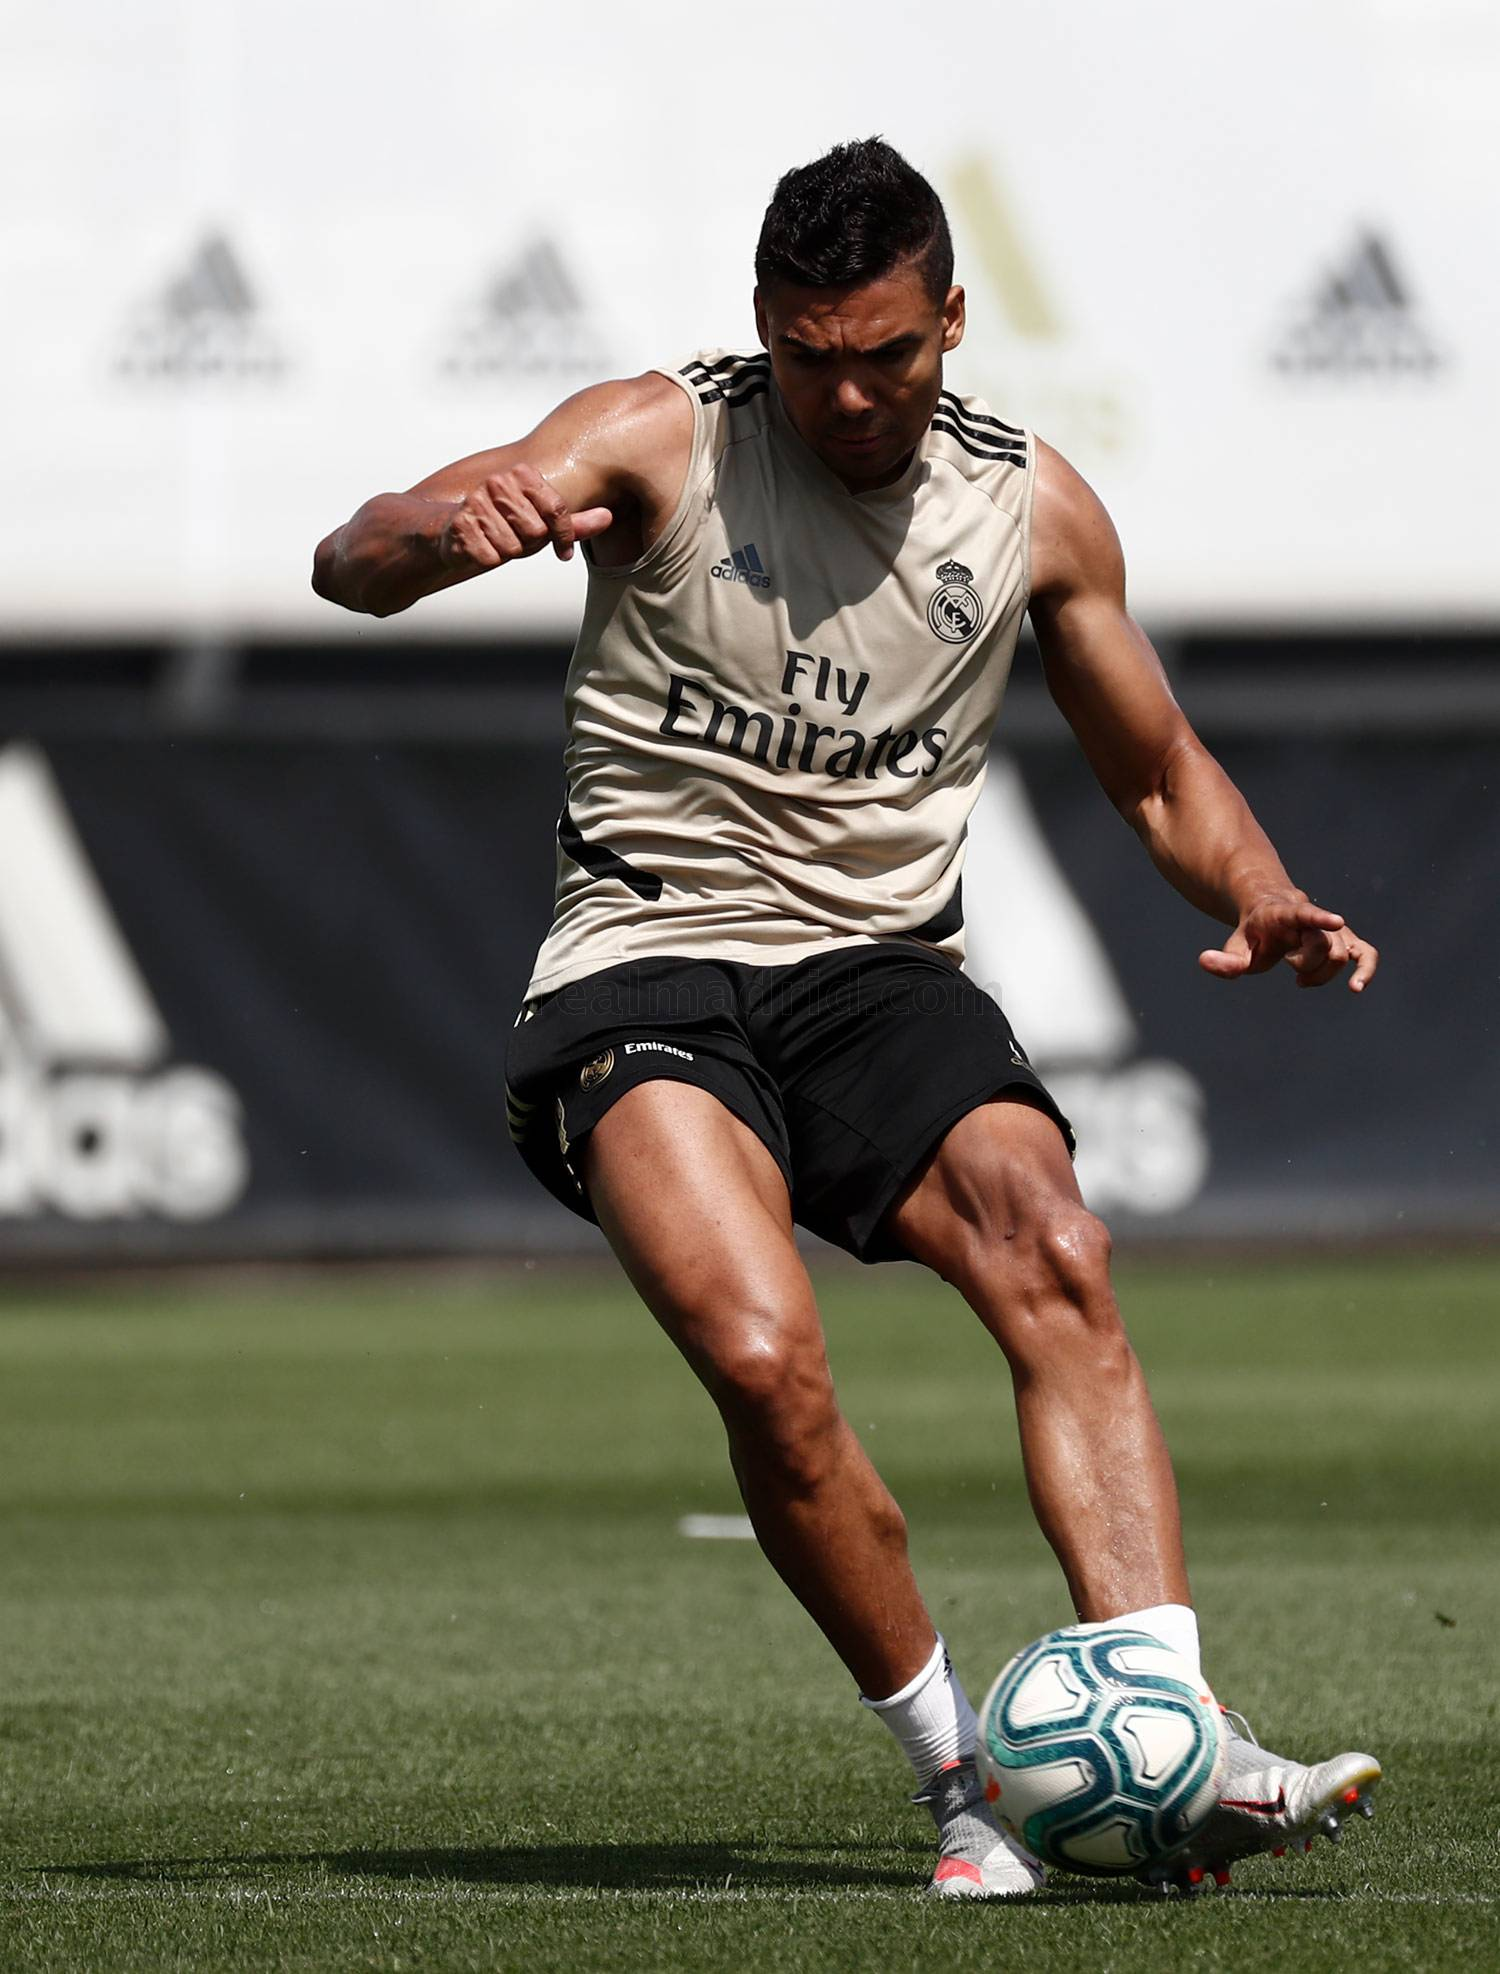 Real Madrid - Entrenamiento del Real Madrid  - 25-06-2020